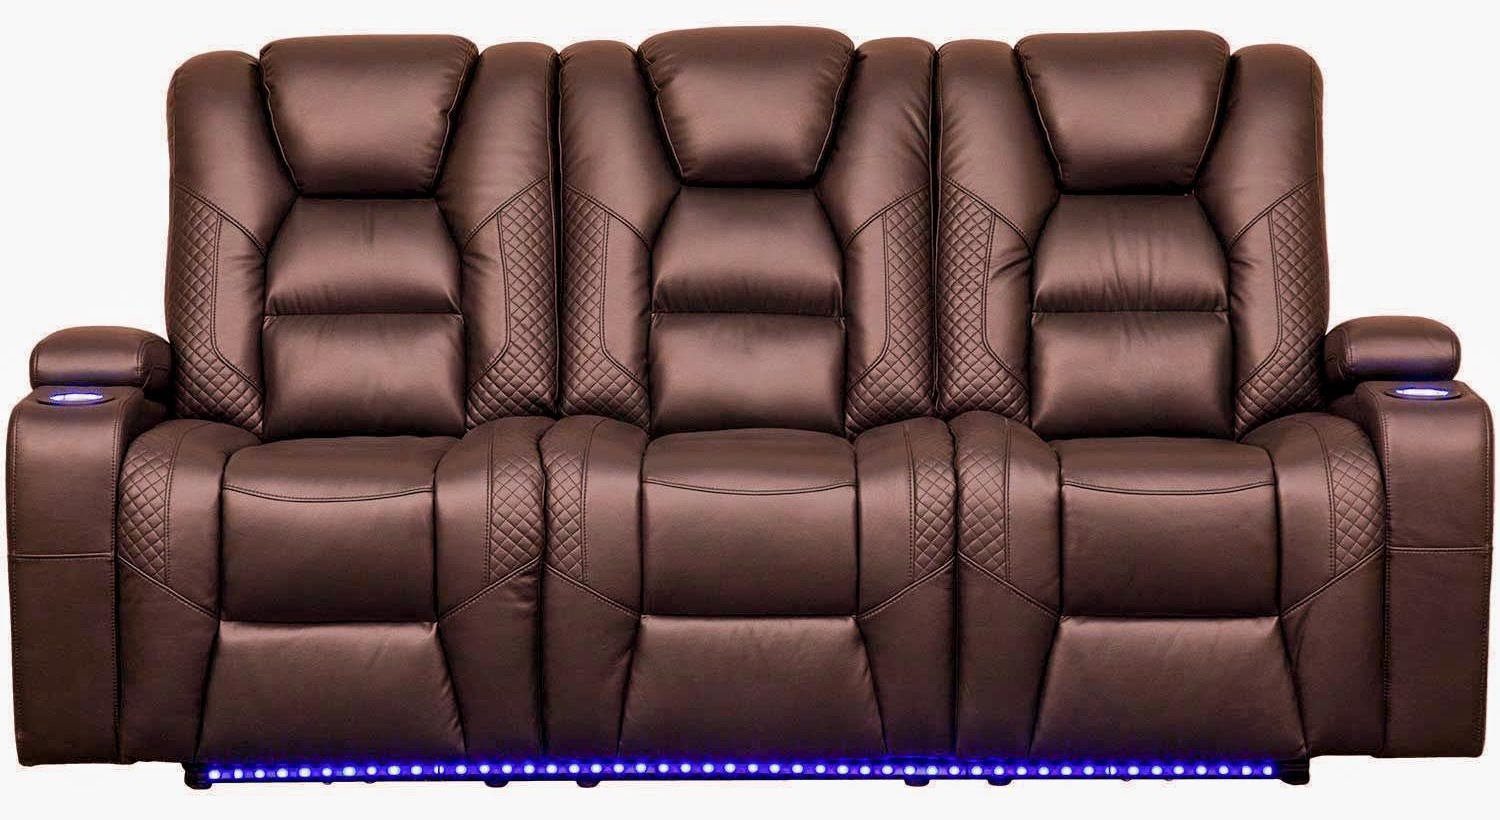 Synergy Home Furnishings 549 107085740 Power Headrest Reclining Sofa With Led Lighting Beck S Furniture Reclining Sofas